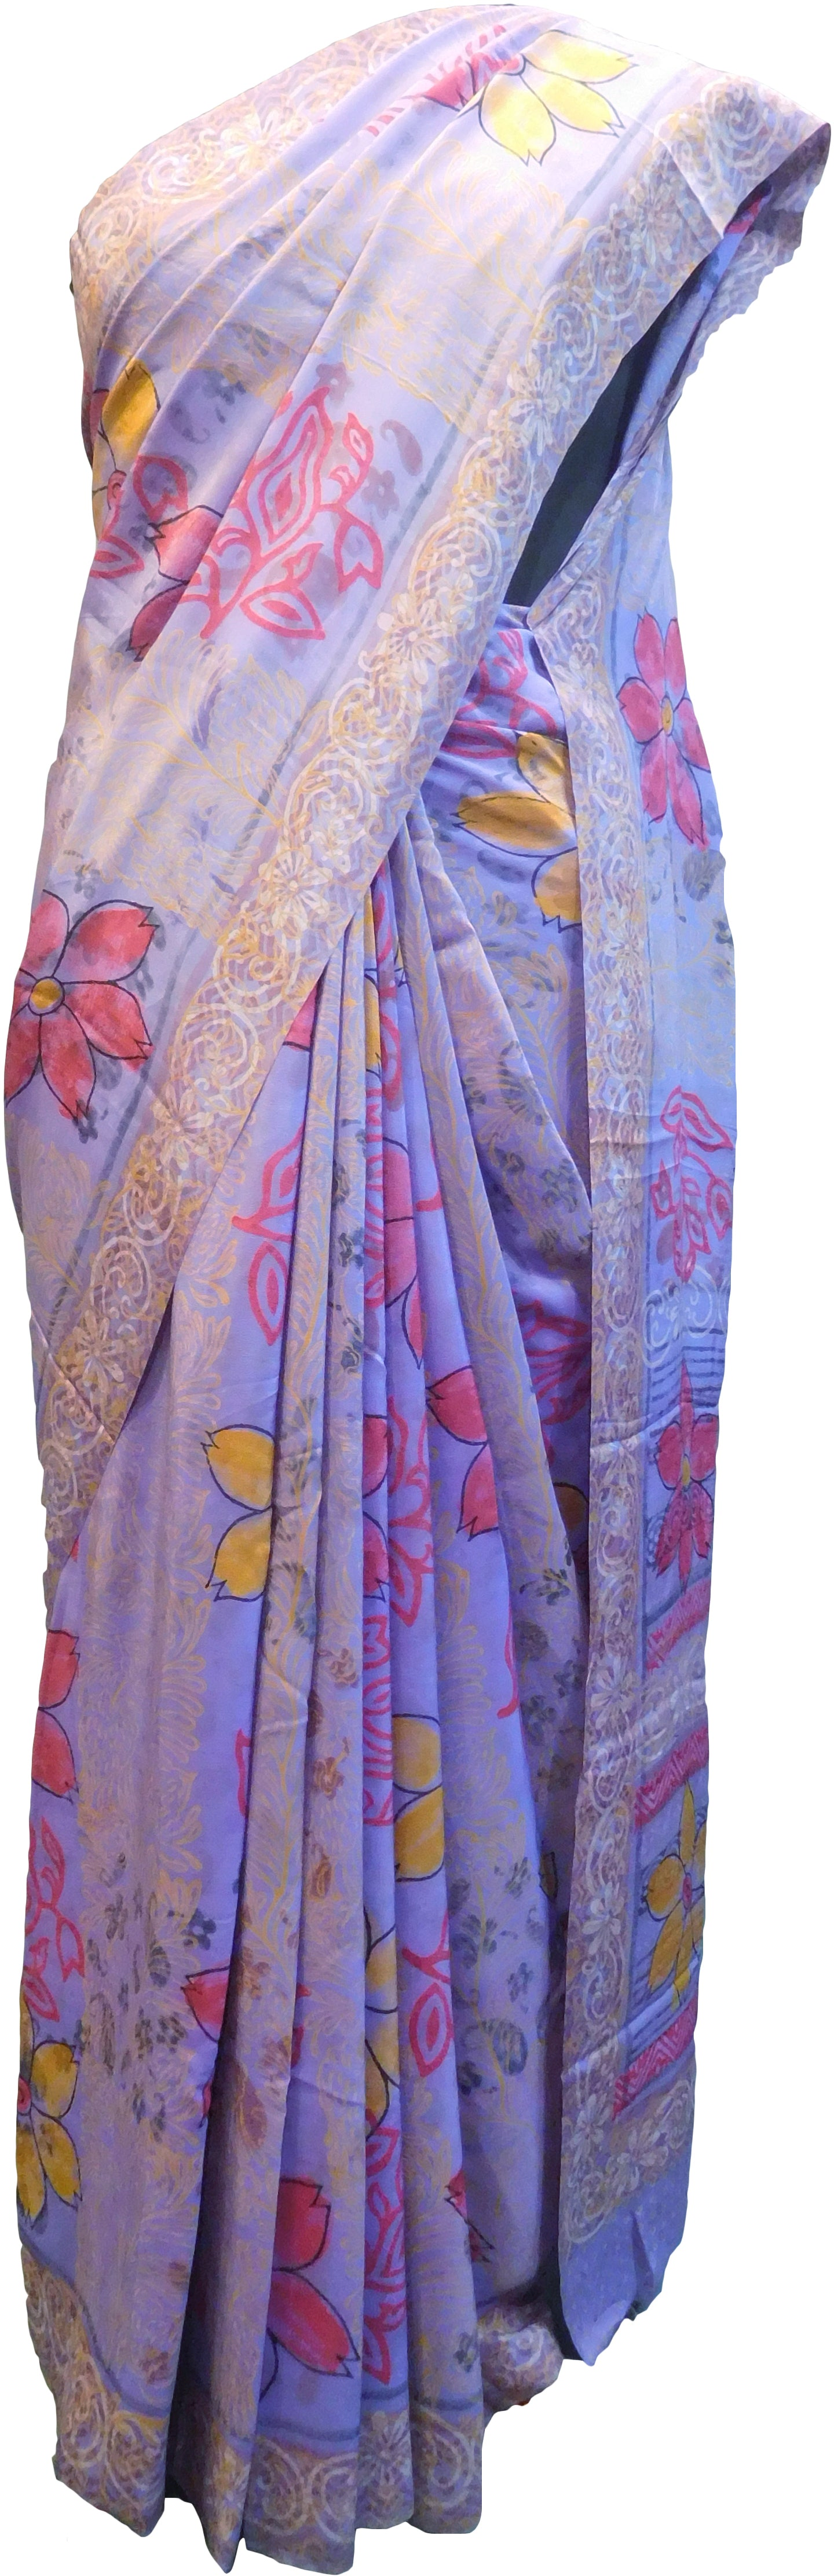 Multicolor Designer Wedding Partywear Pure Crepe Hand Brush Reprinted Kolkata Saree Sari RP263